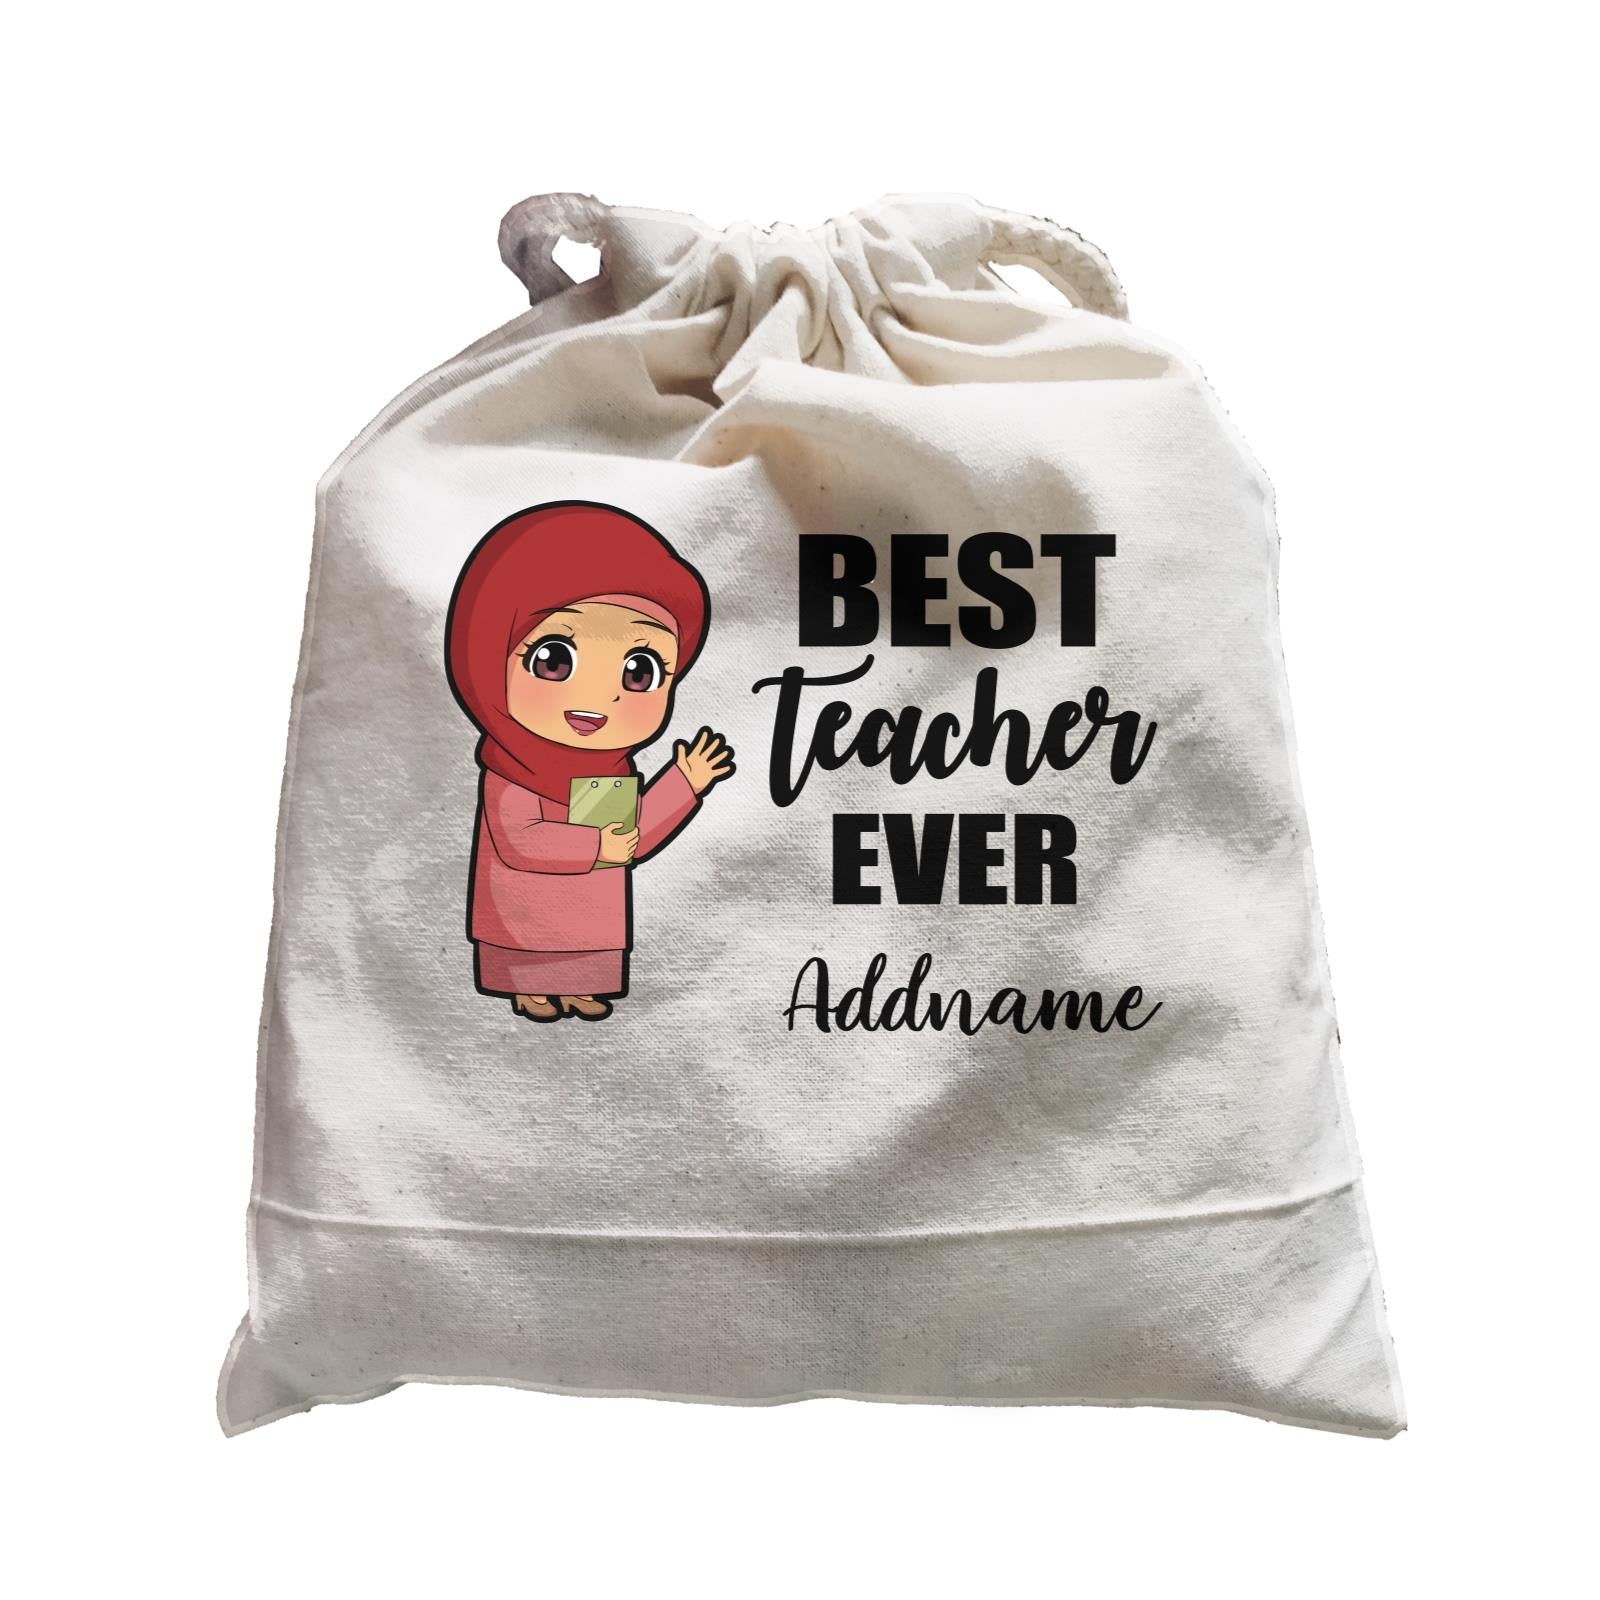 Chibi Teachers Malay Woman Best Teacher Ever Addname Satchel